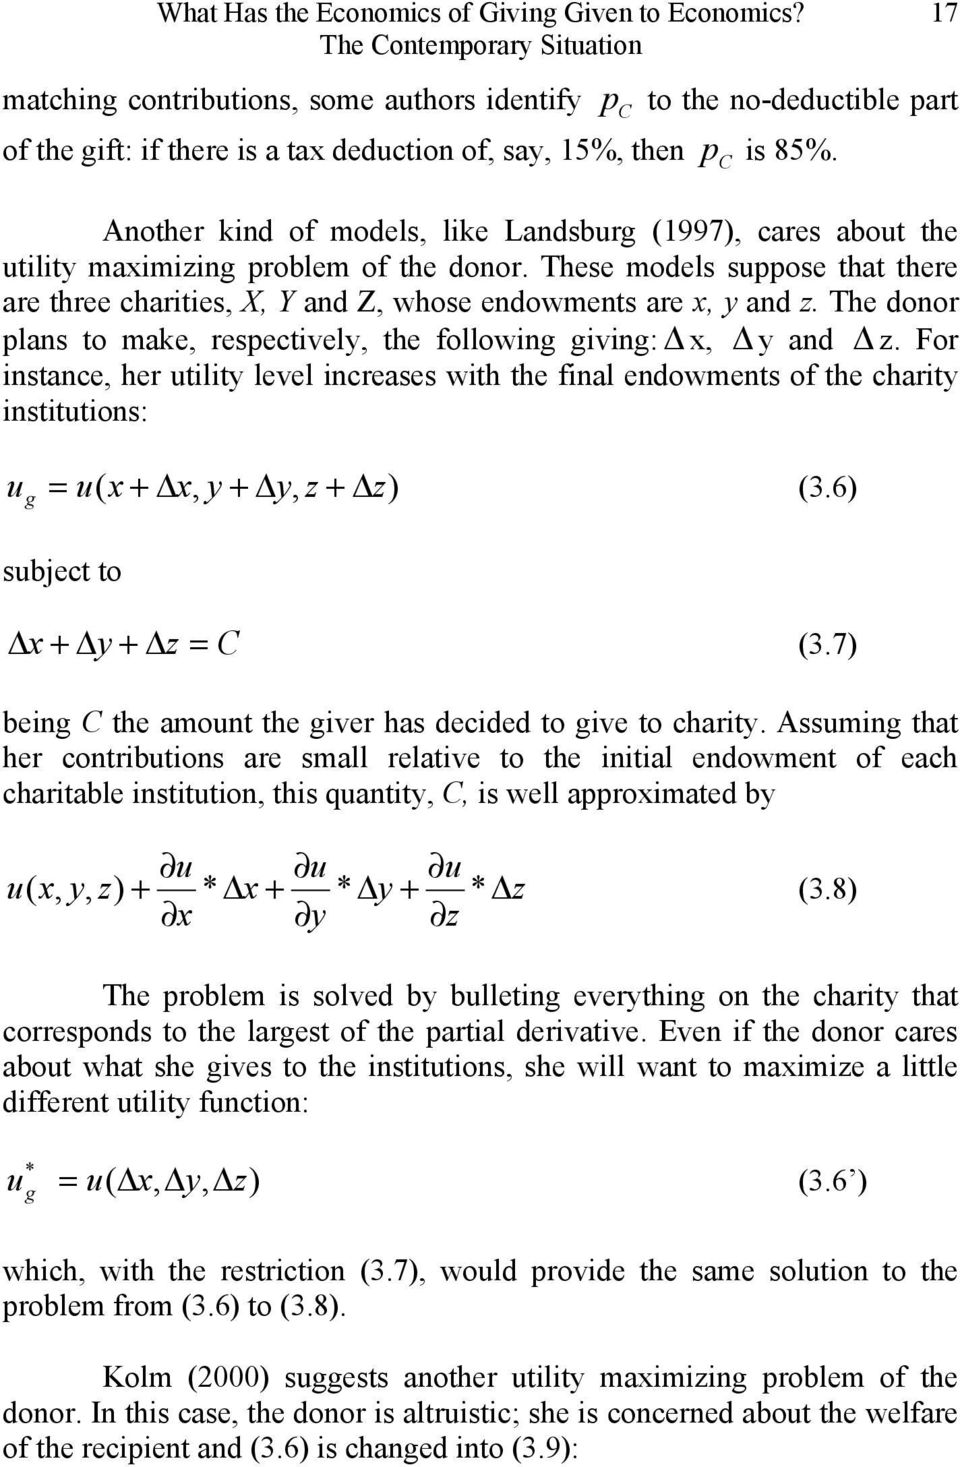 These models suppose that there are three charities, X, Y and Z, whose endowments are x, y and z. The donor plans to make, respectively, the following giving: x, y and z.